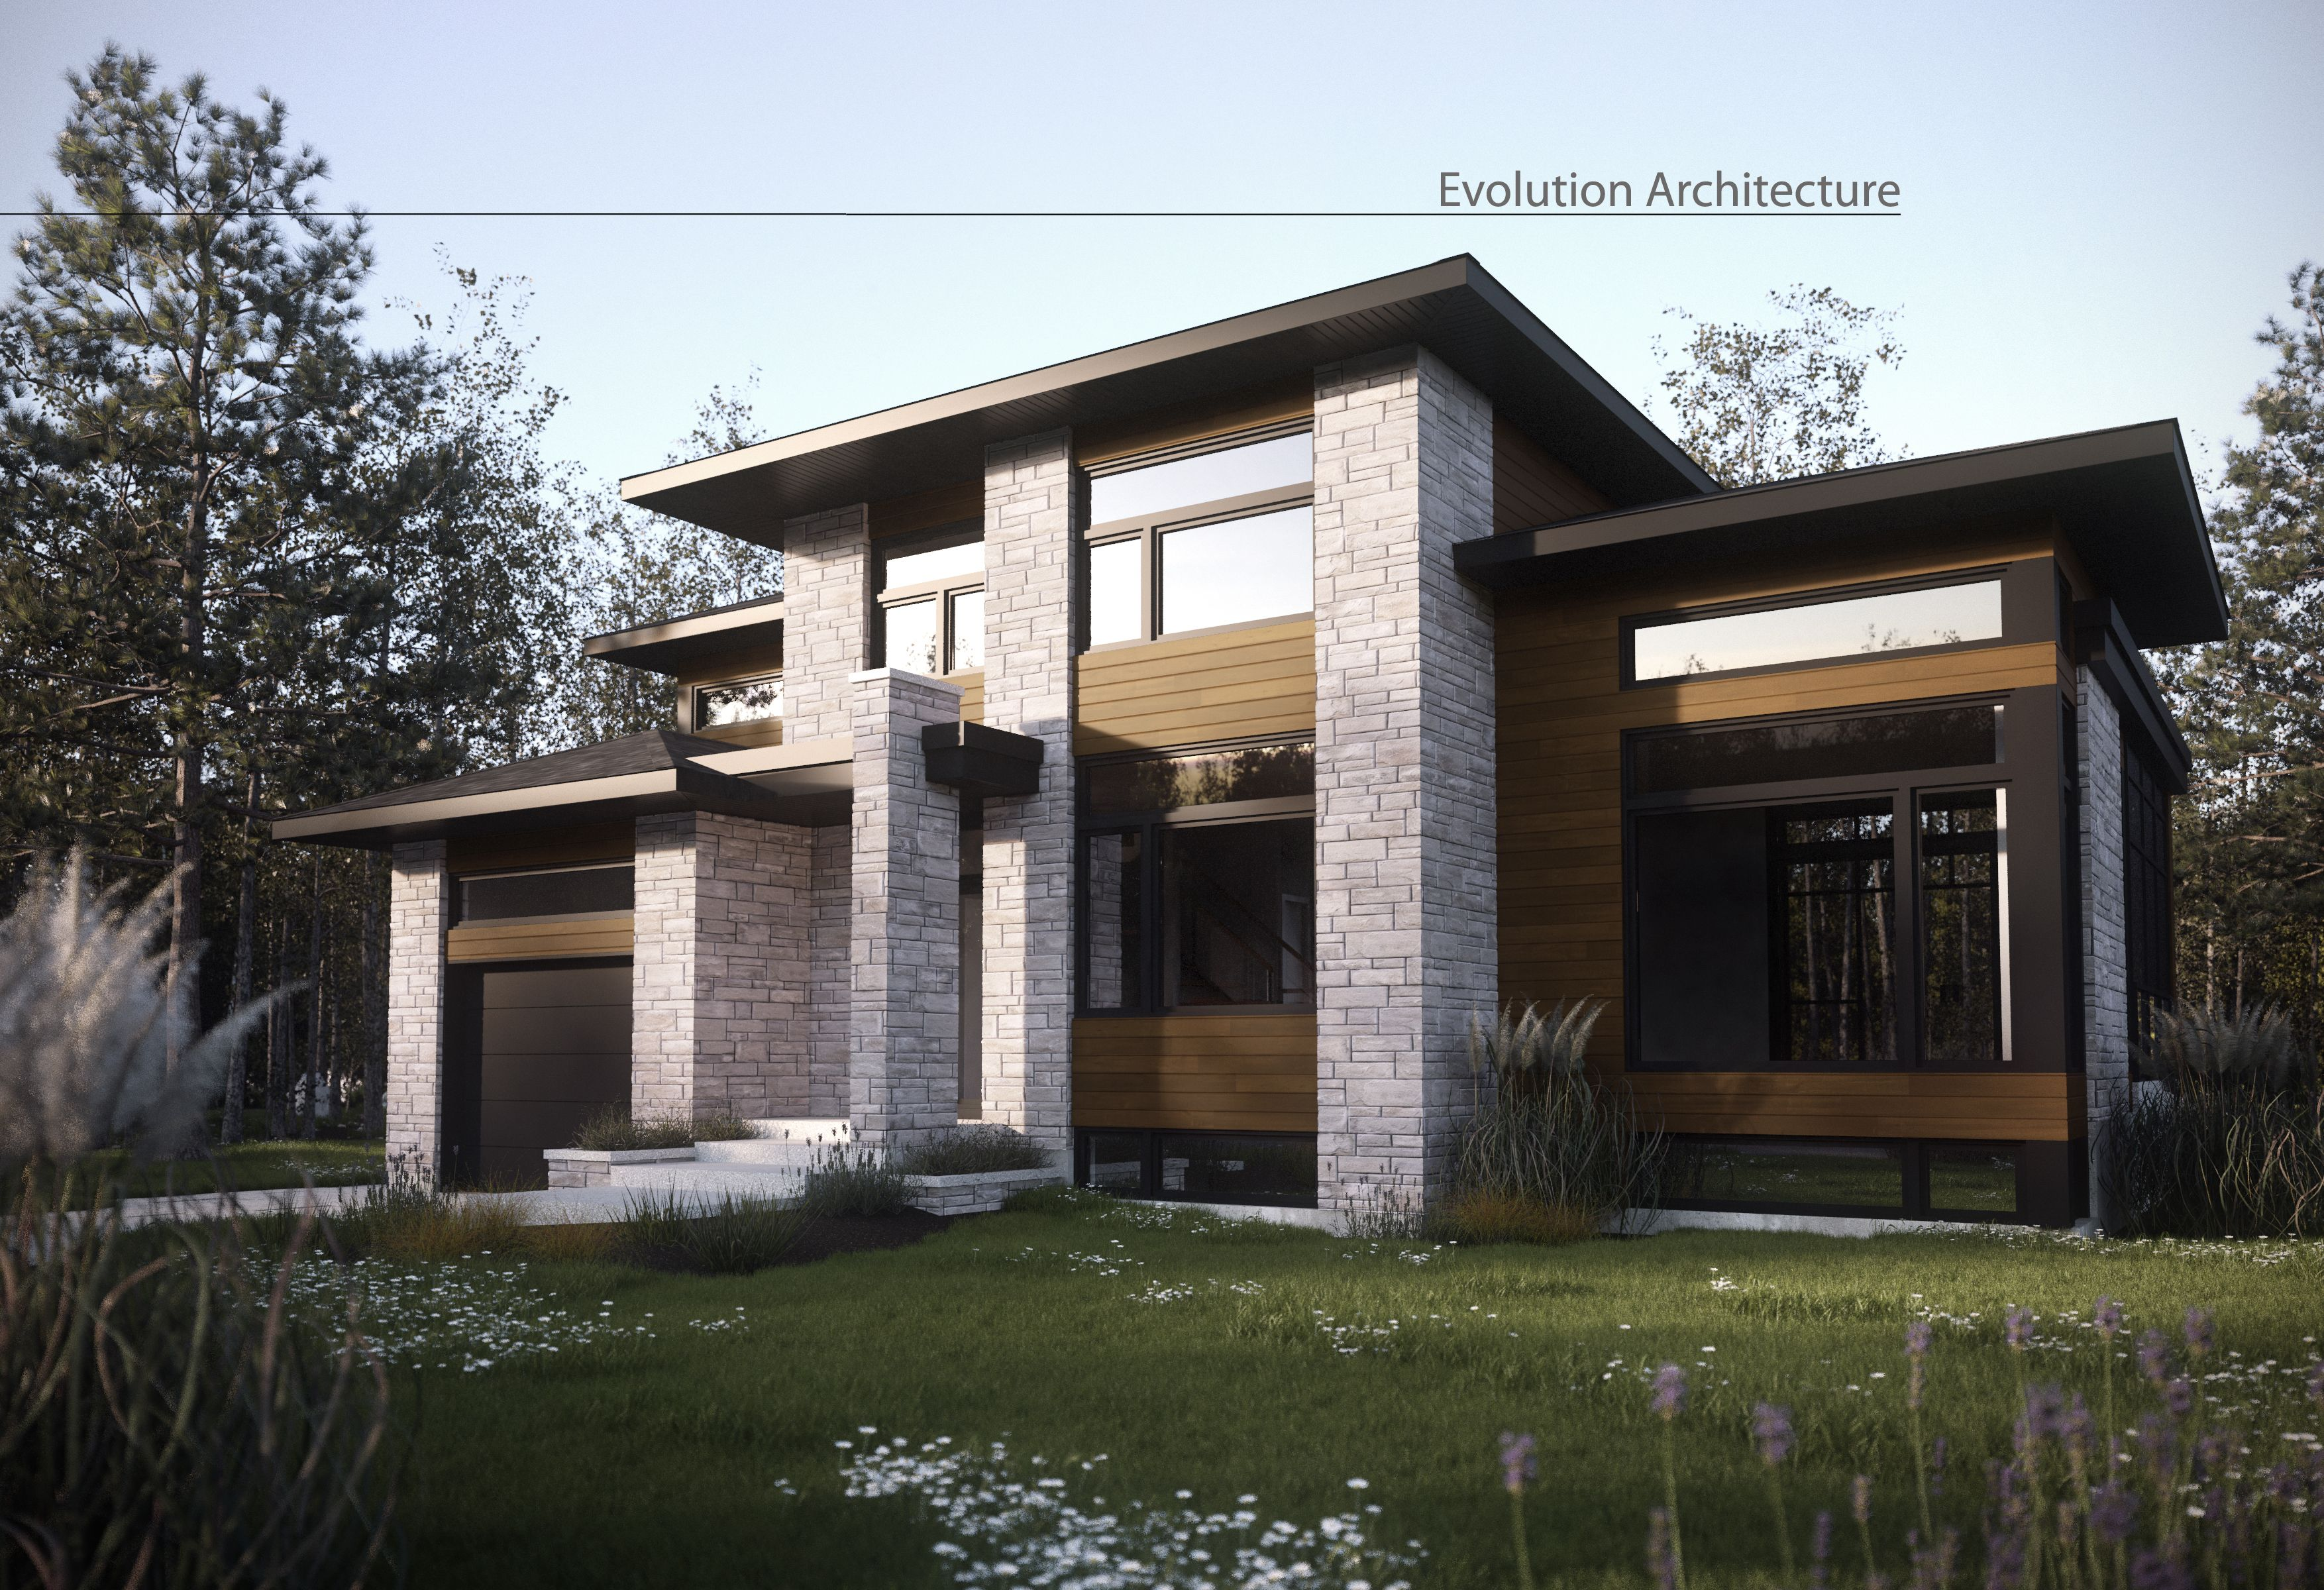 evolution architecture maison contemporaine cr ation